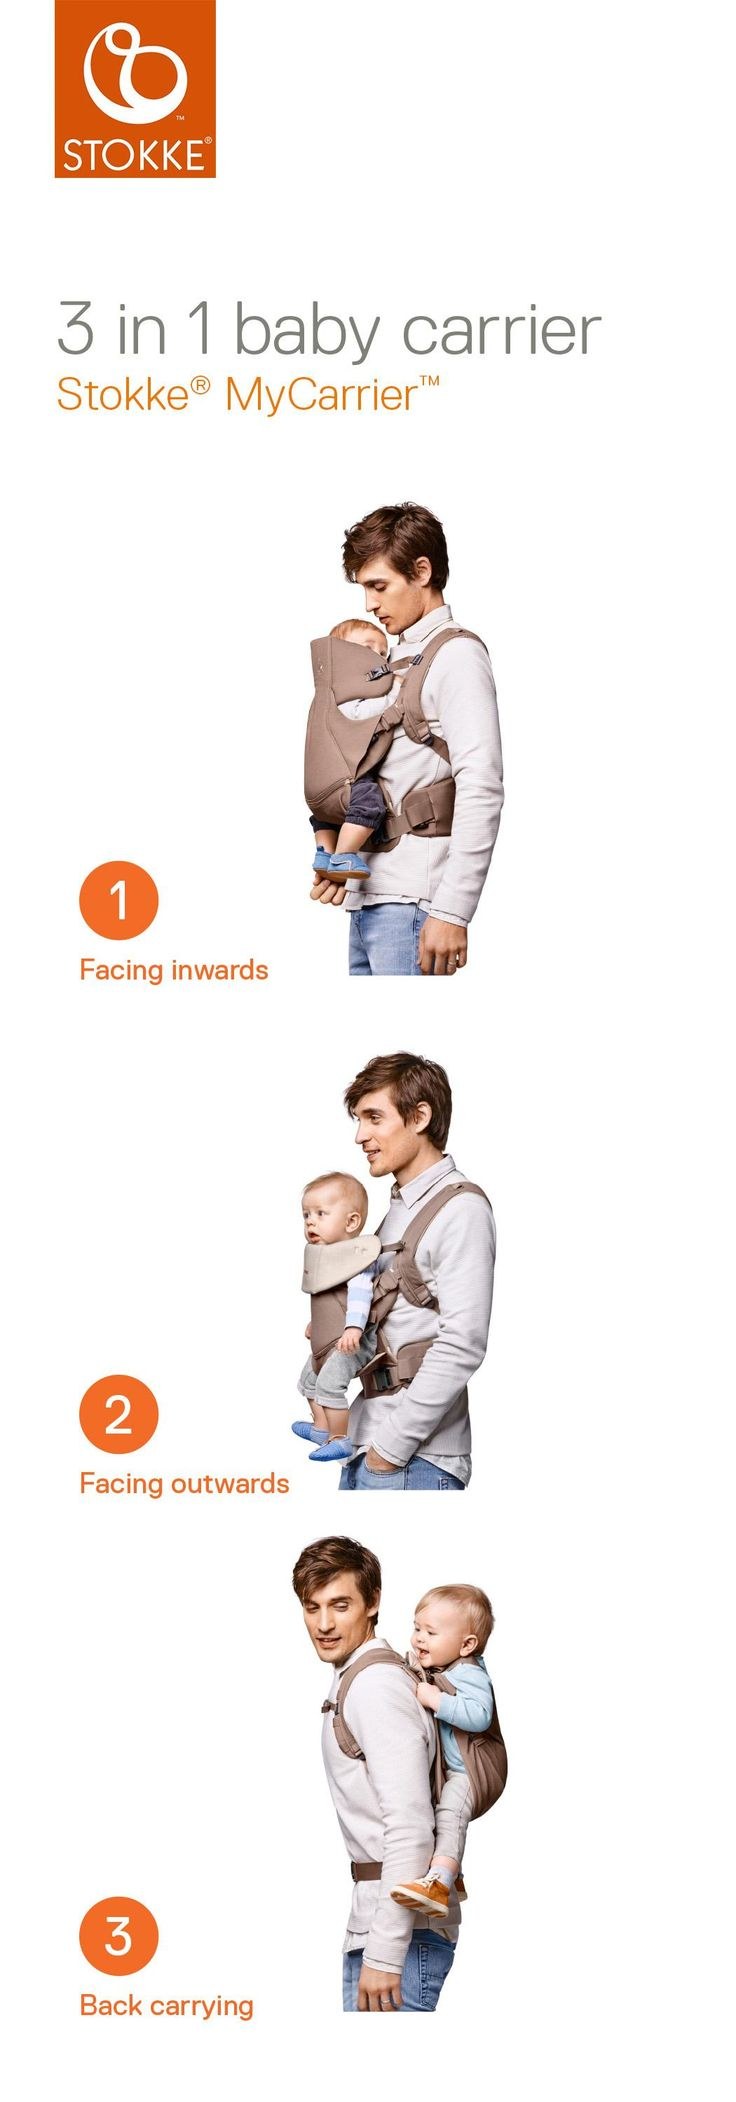 3-in-1 ergonomic baby carrier for your newborn, child or toddler –Stokke MyCarrier